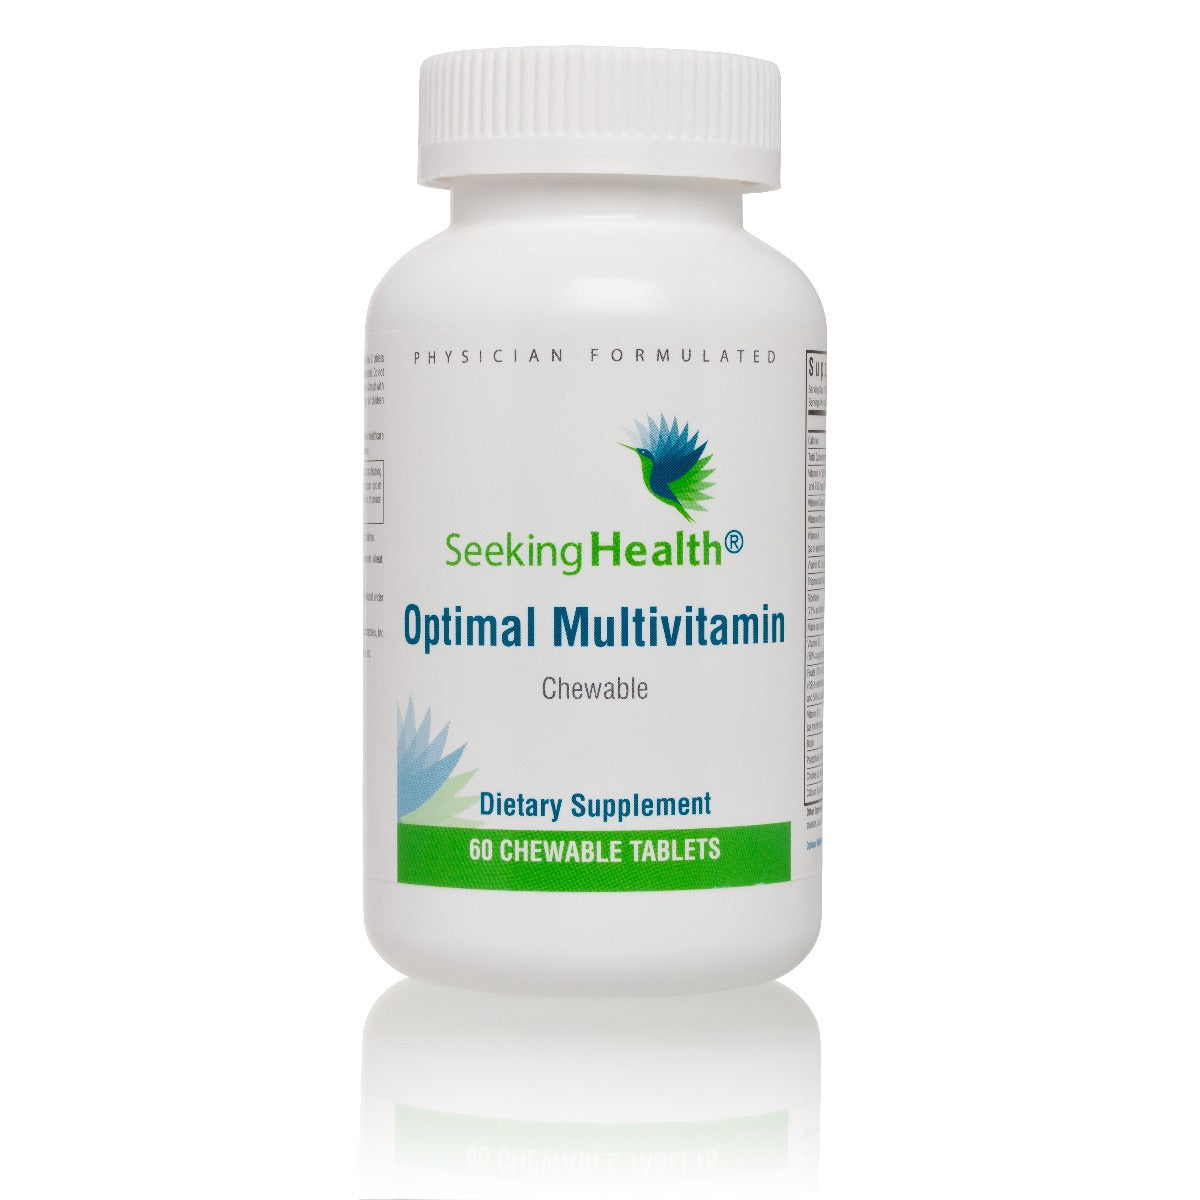 Optimal Multivitamin Chewable - 60 Chewable Tablets